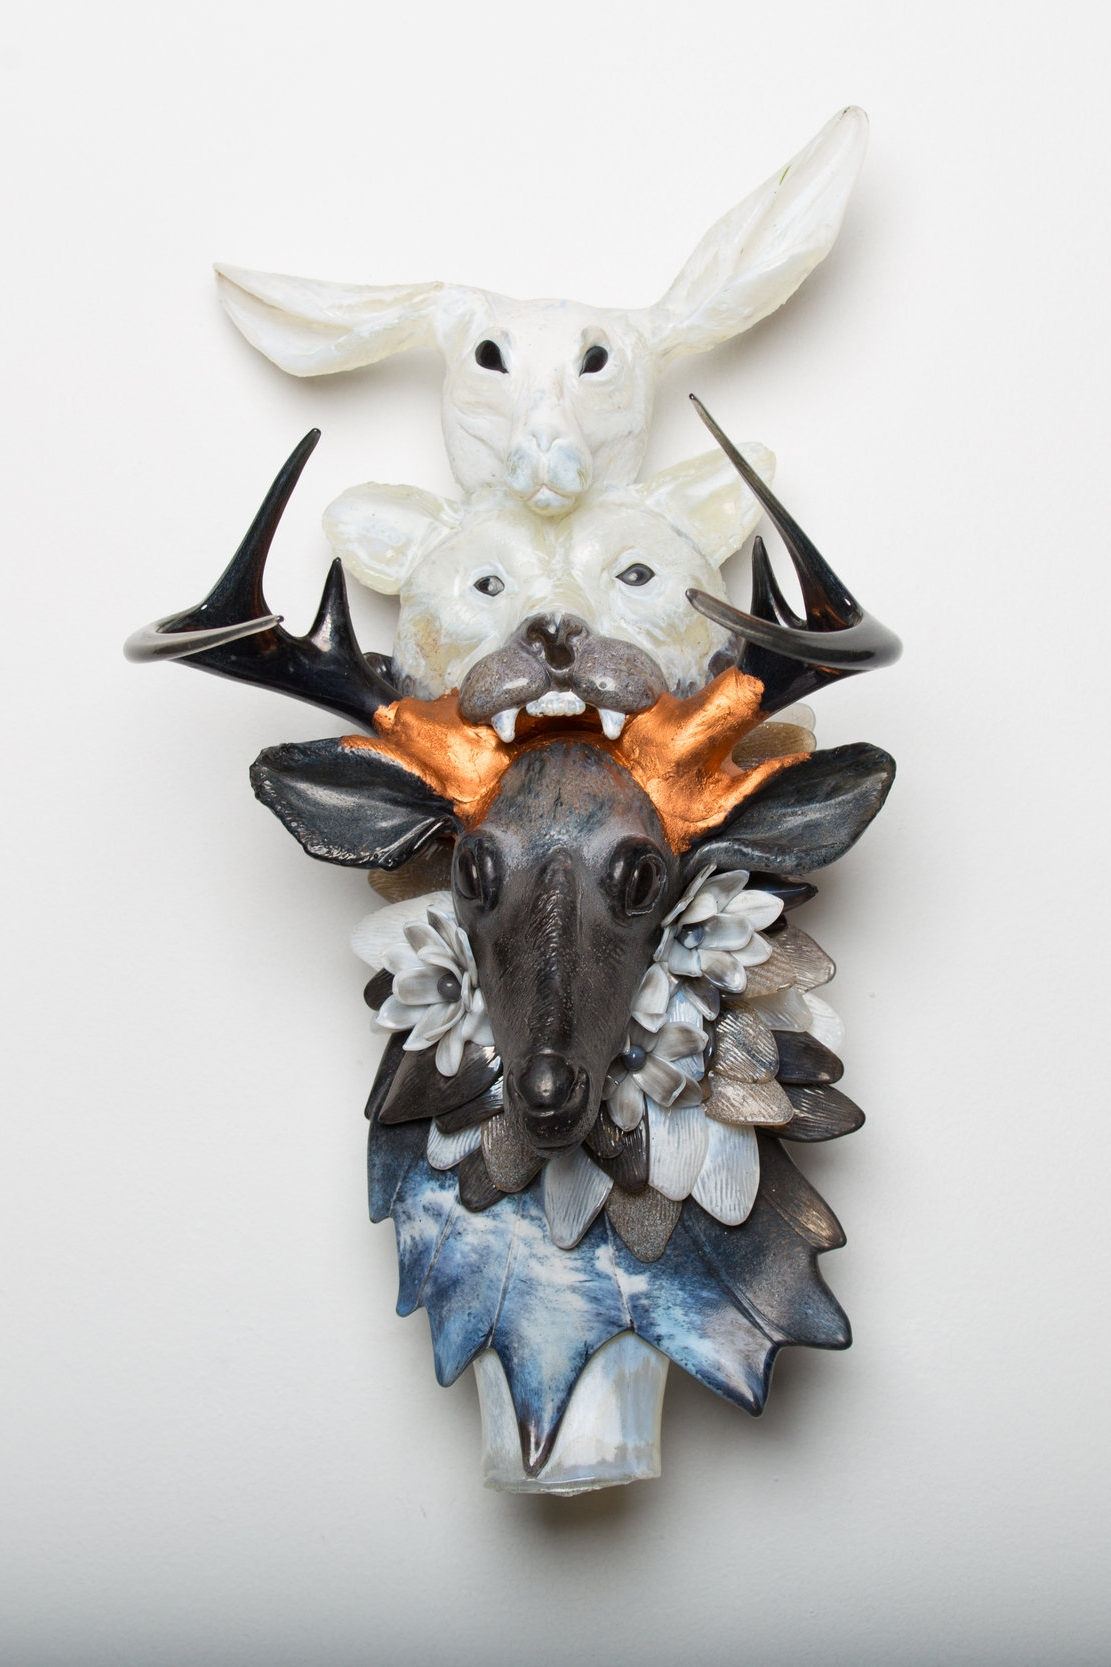 Grant and Erin Garmezy hot sculpted glass 2017